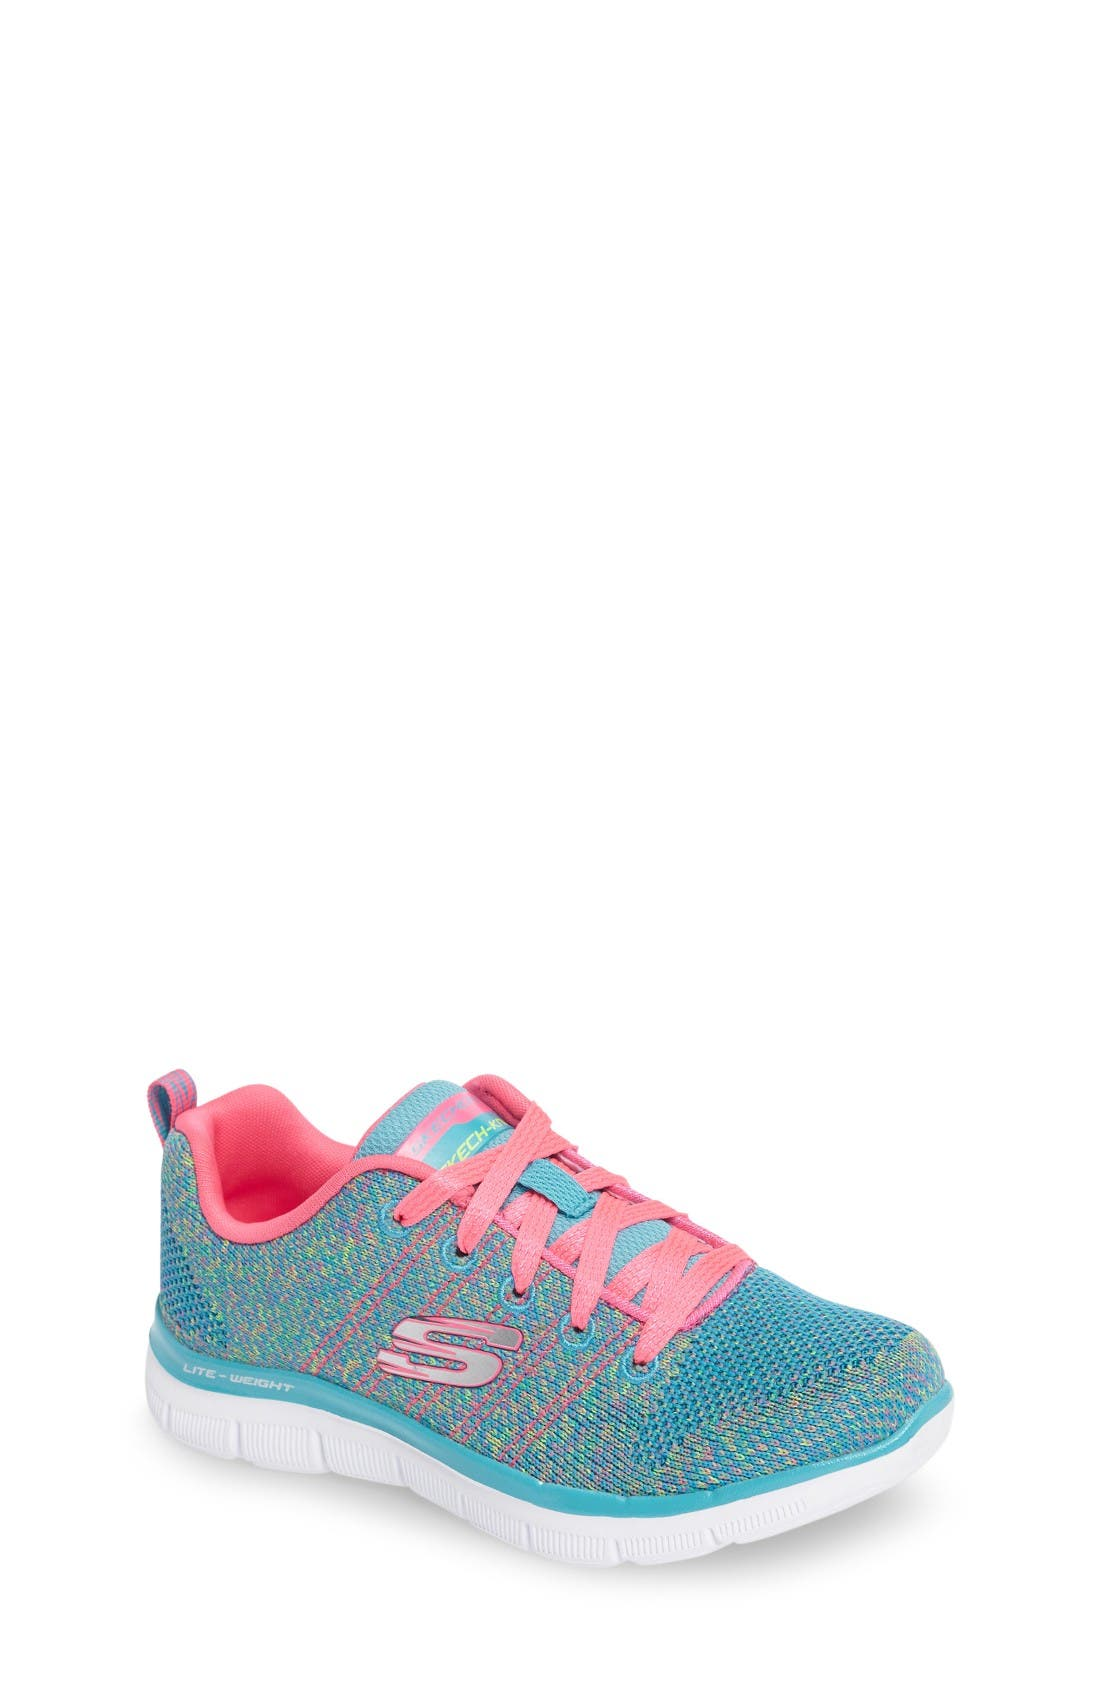 SKECHERS Skech Appeal 2.0 High Energy Sneaker (Toddler, Little Kid & Big Kid)